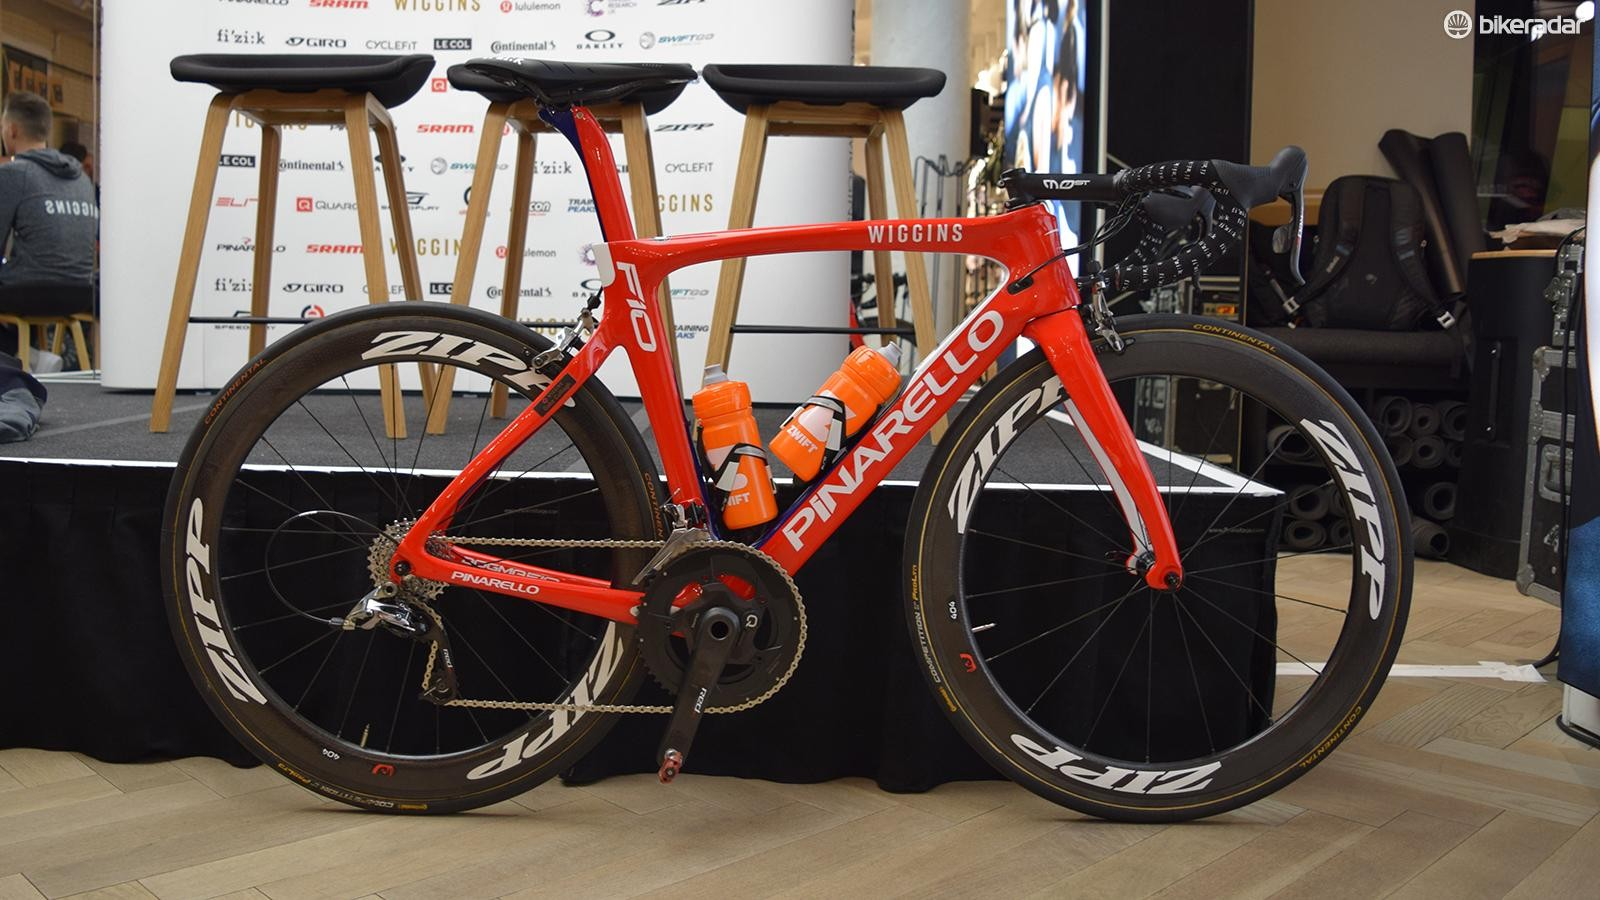 Team Wiggins' Pinarello Dogma F10 for 2018